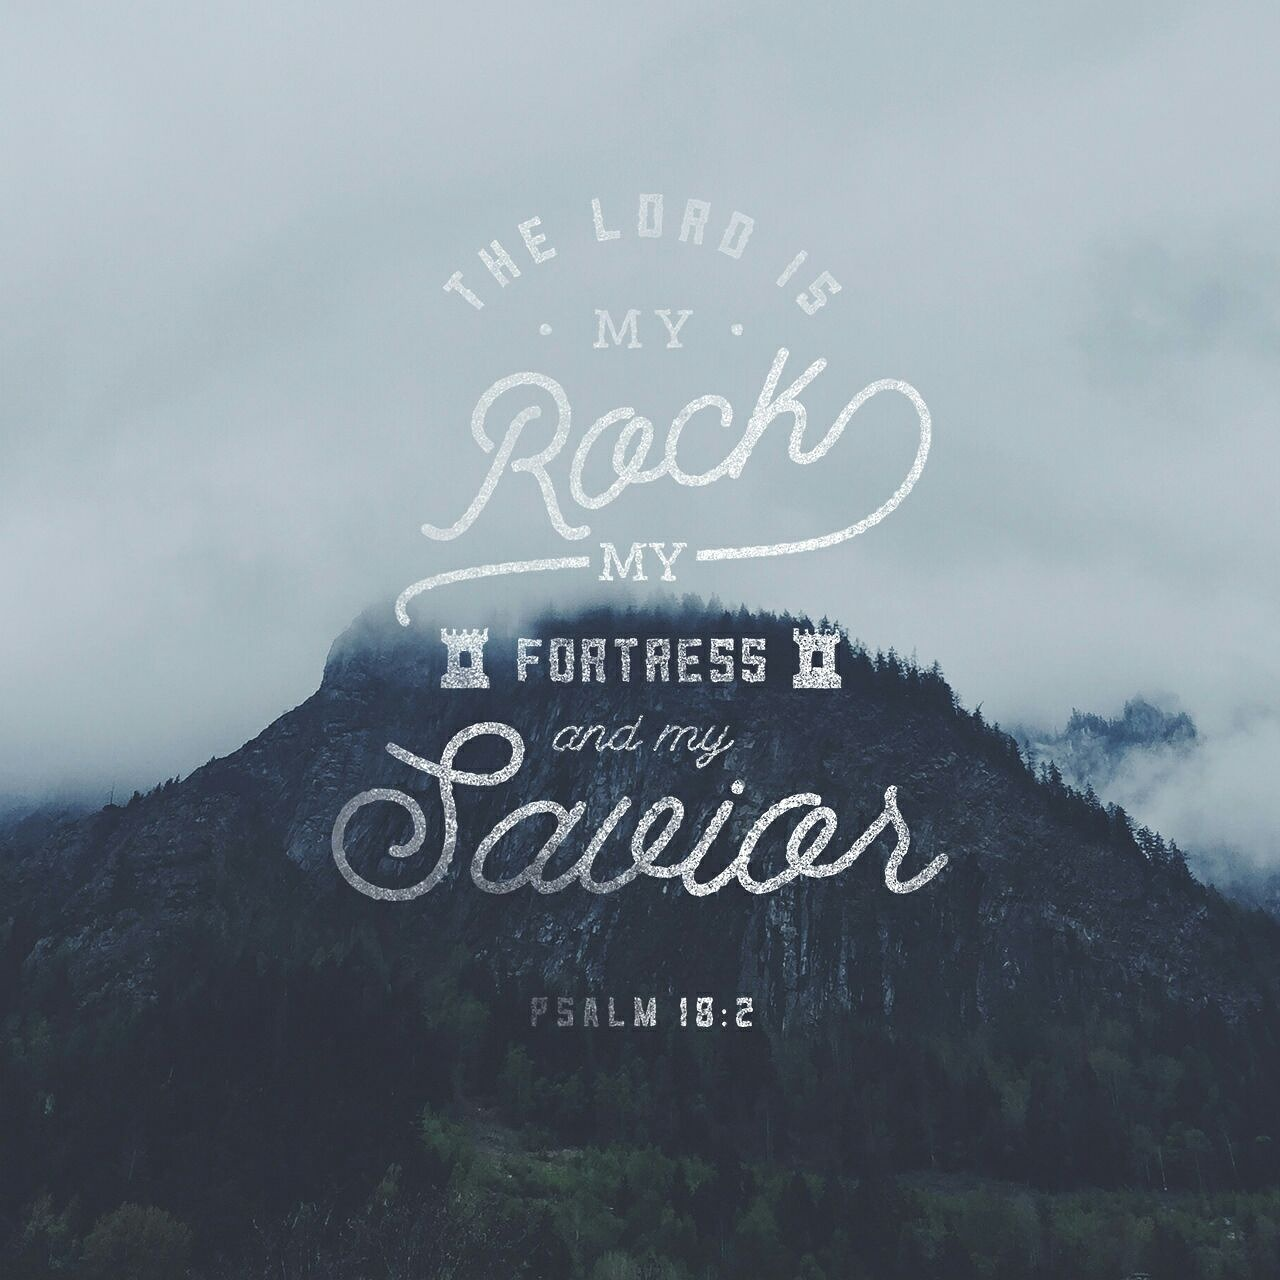 Verse Art - Psalm 18:2 @faithplanned